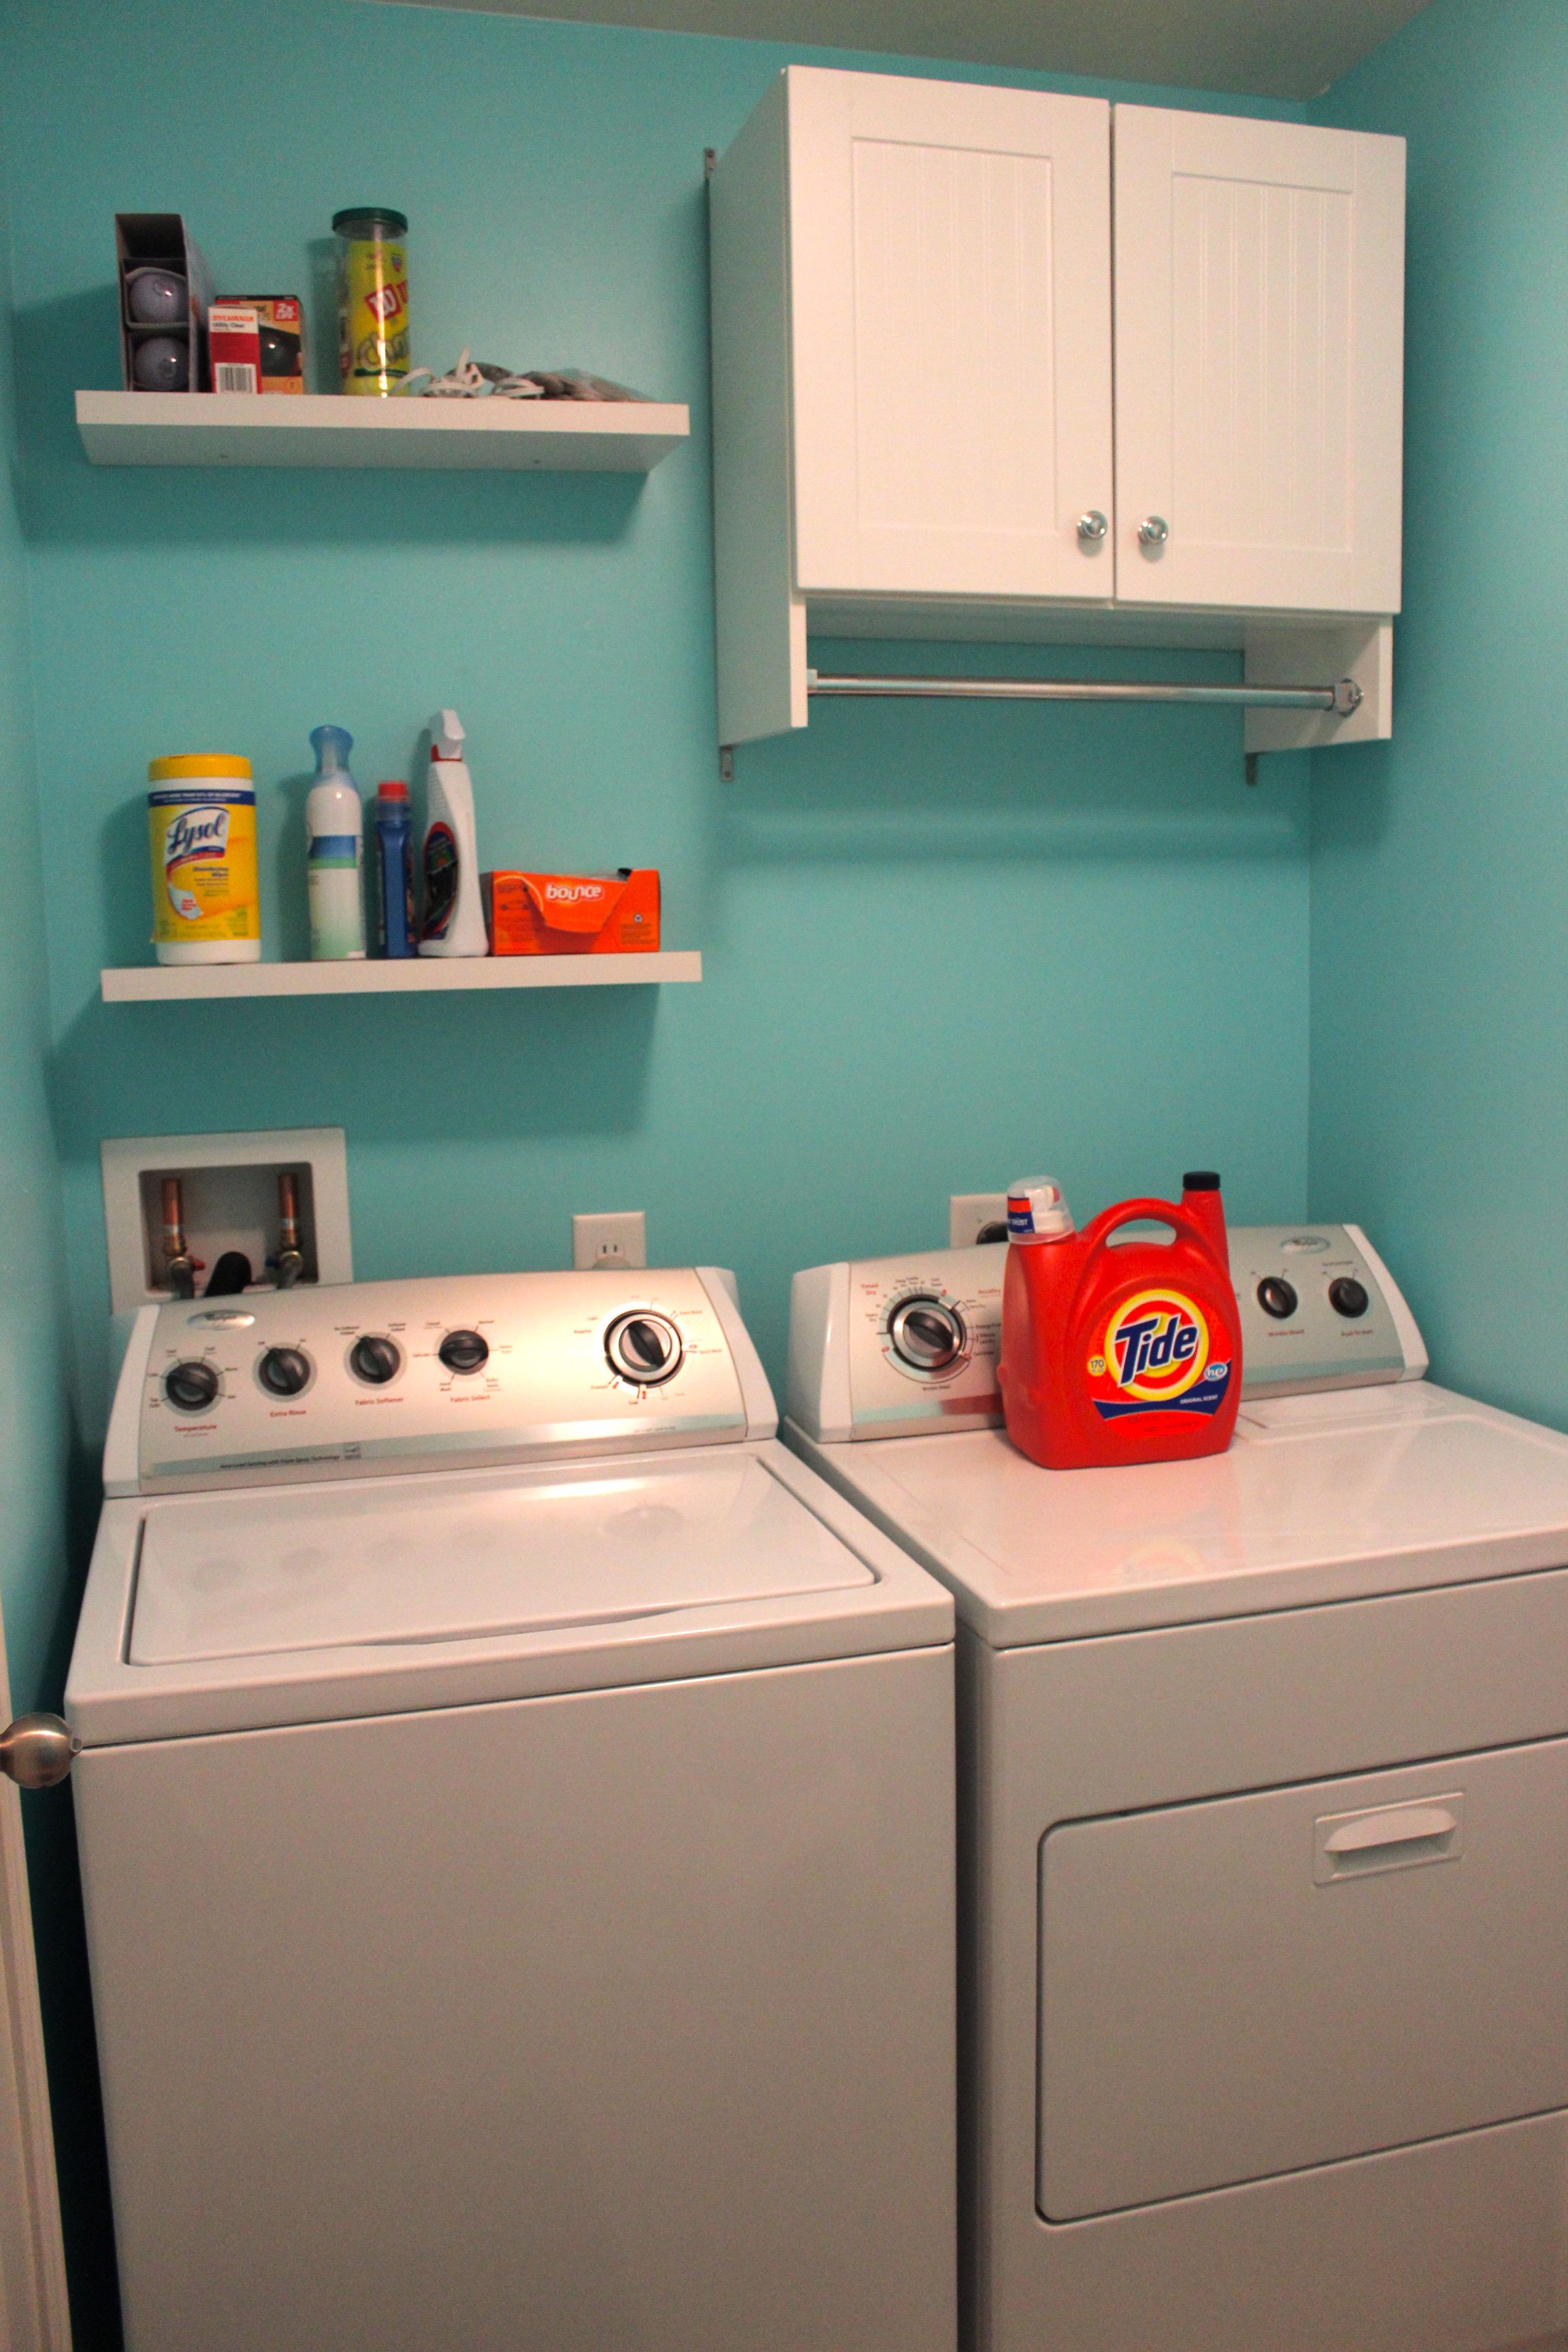 Behr Sweet Rhapsody Blue Laundry Room Added Cabinet And